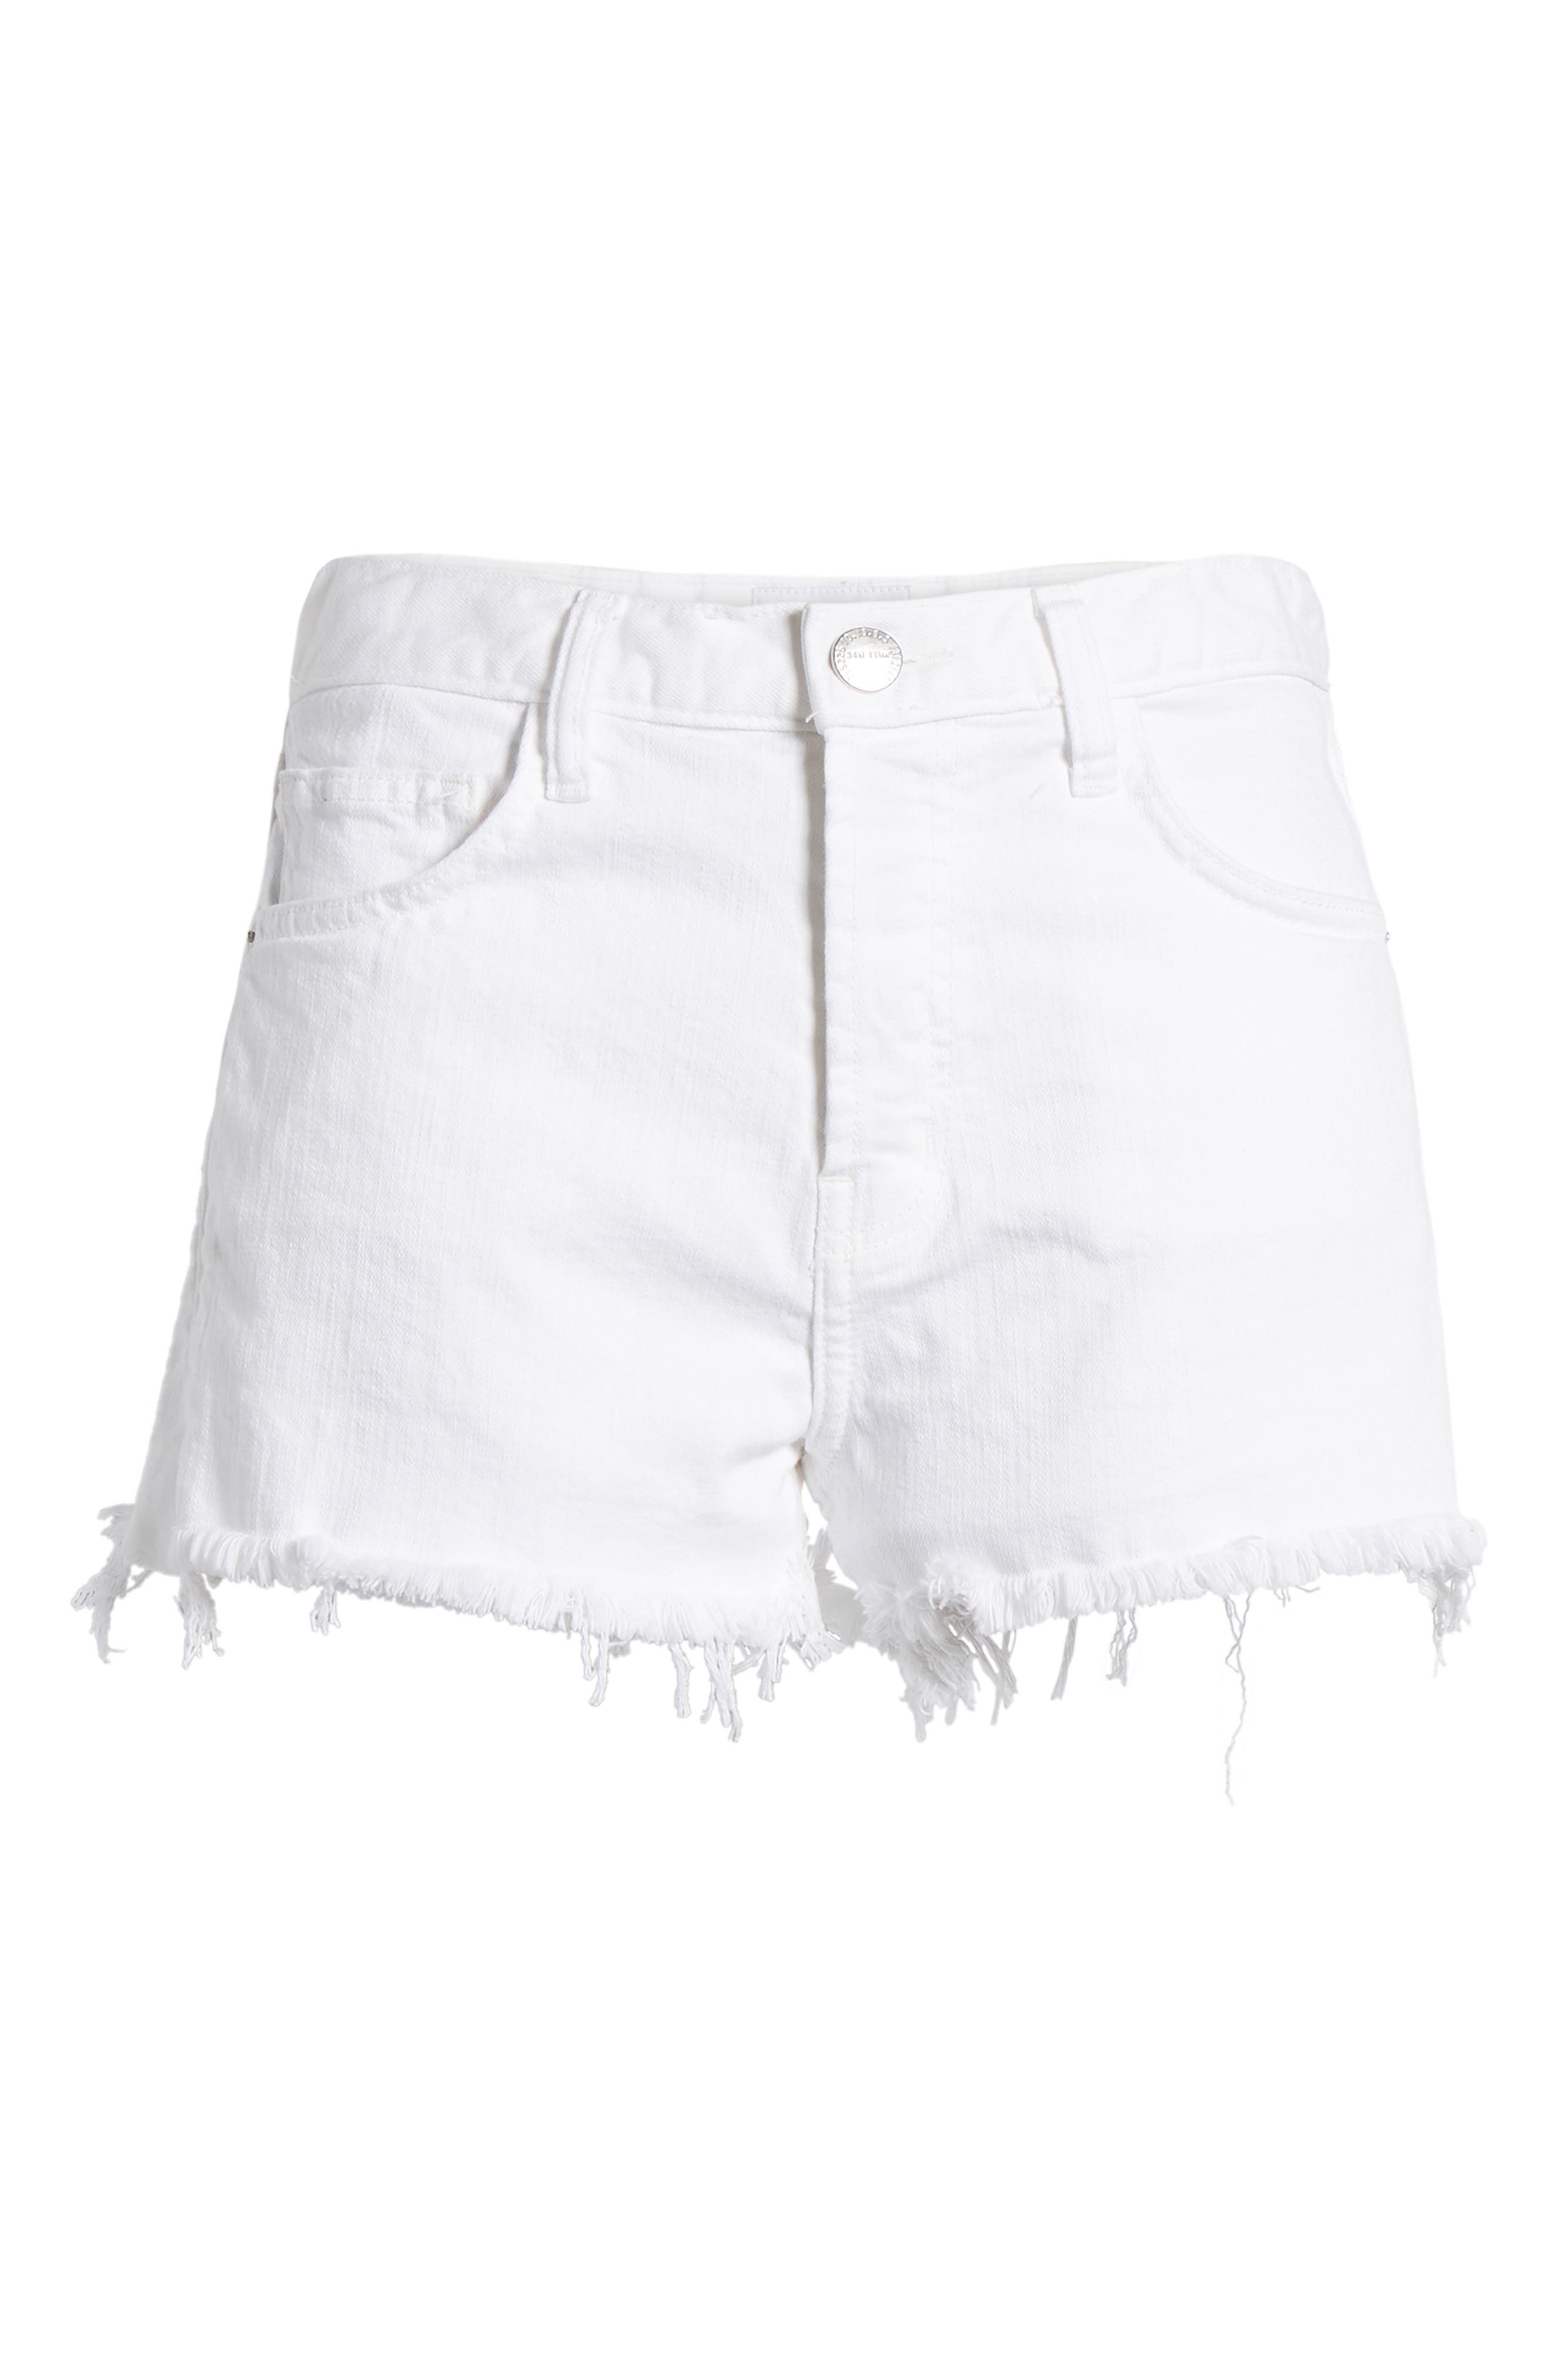 The Ultra High Waist Cutoff Denim Shorts,                             Alternate thumbnail 7, color,                             155